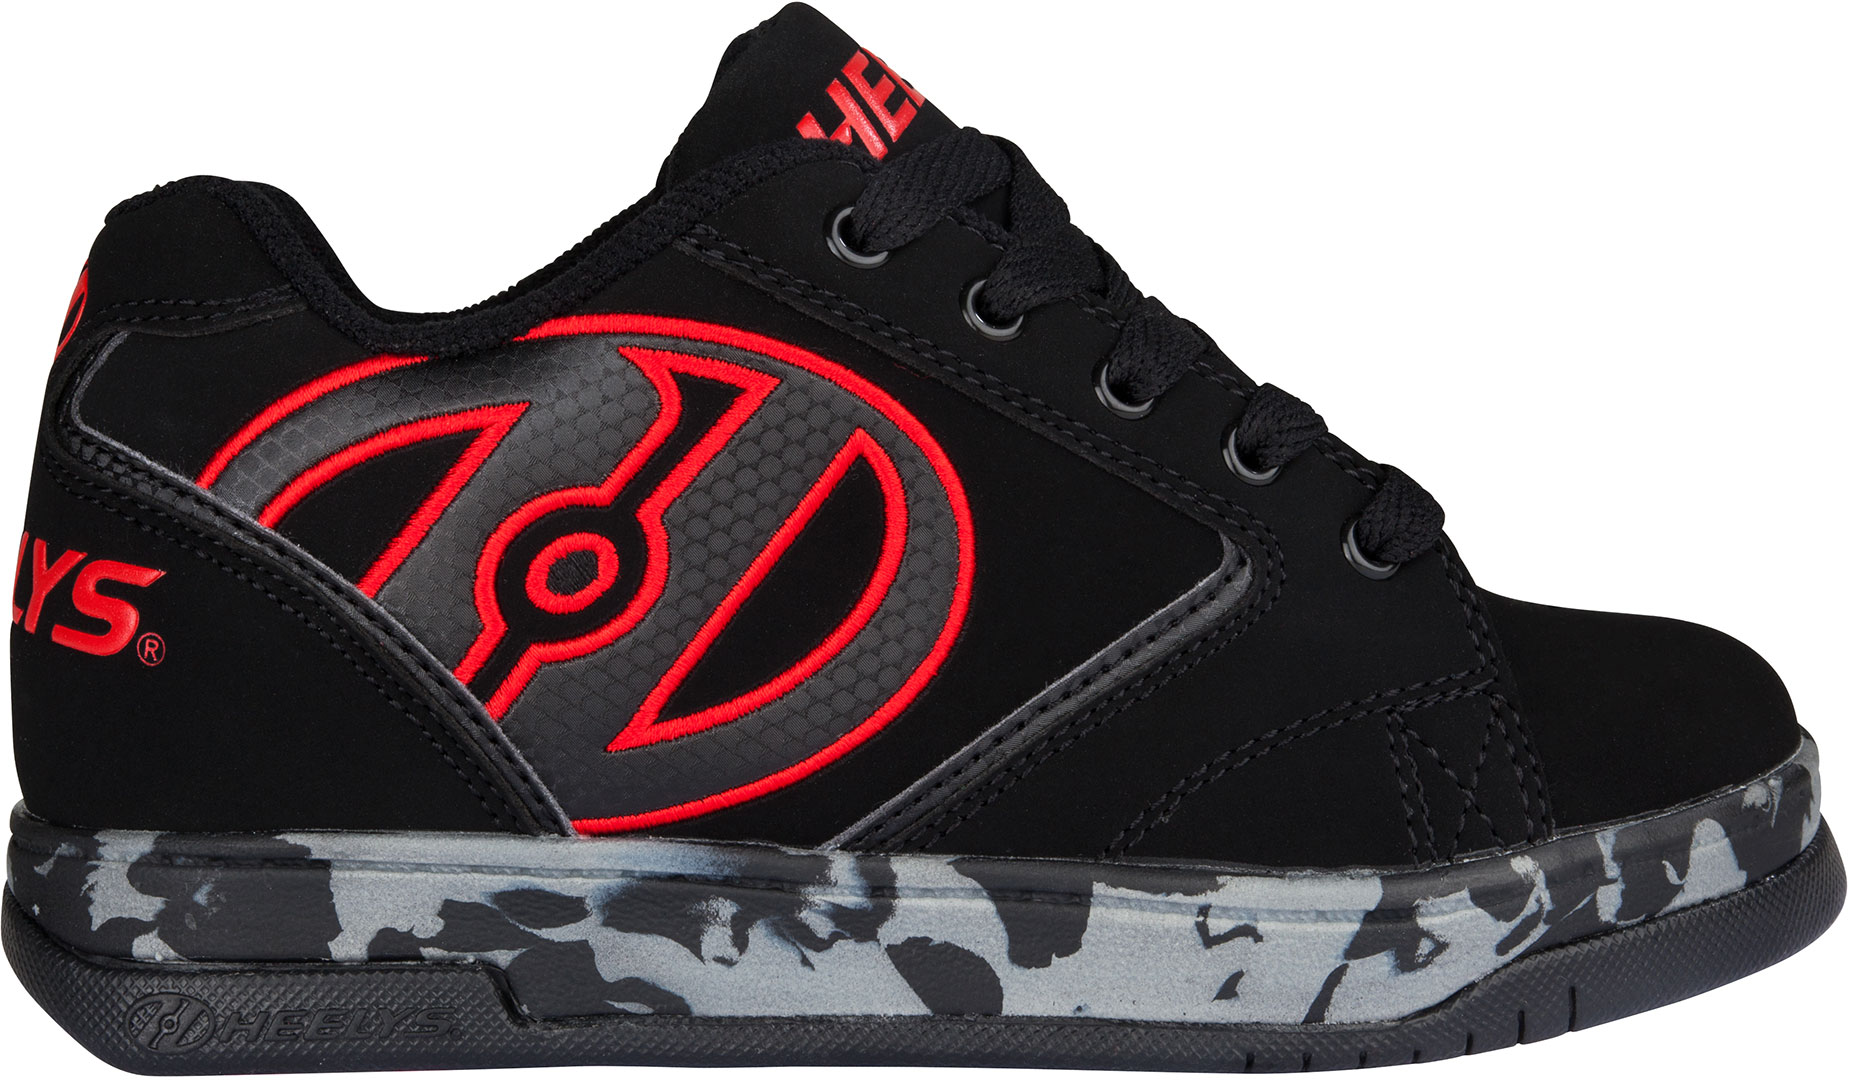 heelys propel 2 0 schuh 2017 black red confetti schuhe mit. Black Bedroom Furniture Sets. Home Design Ideas